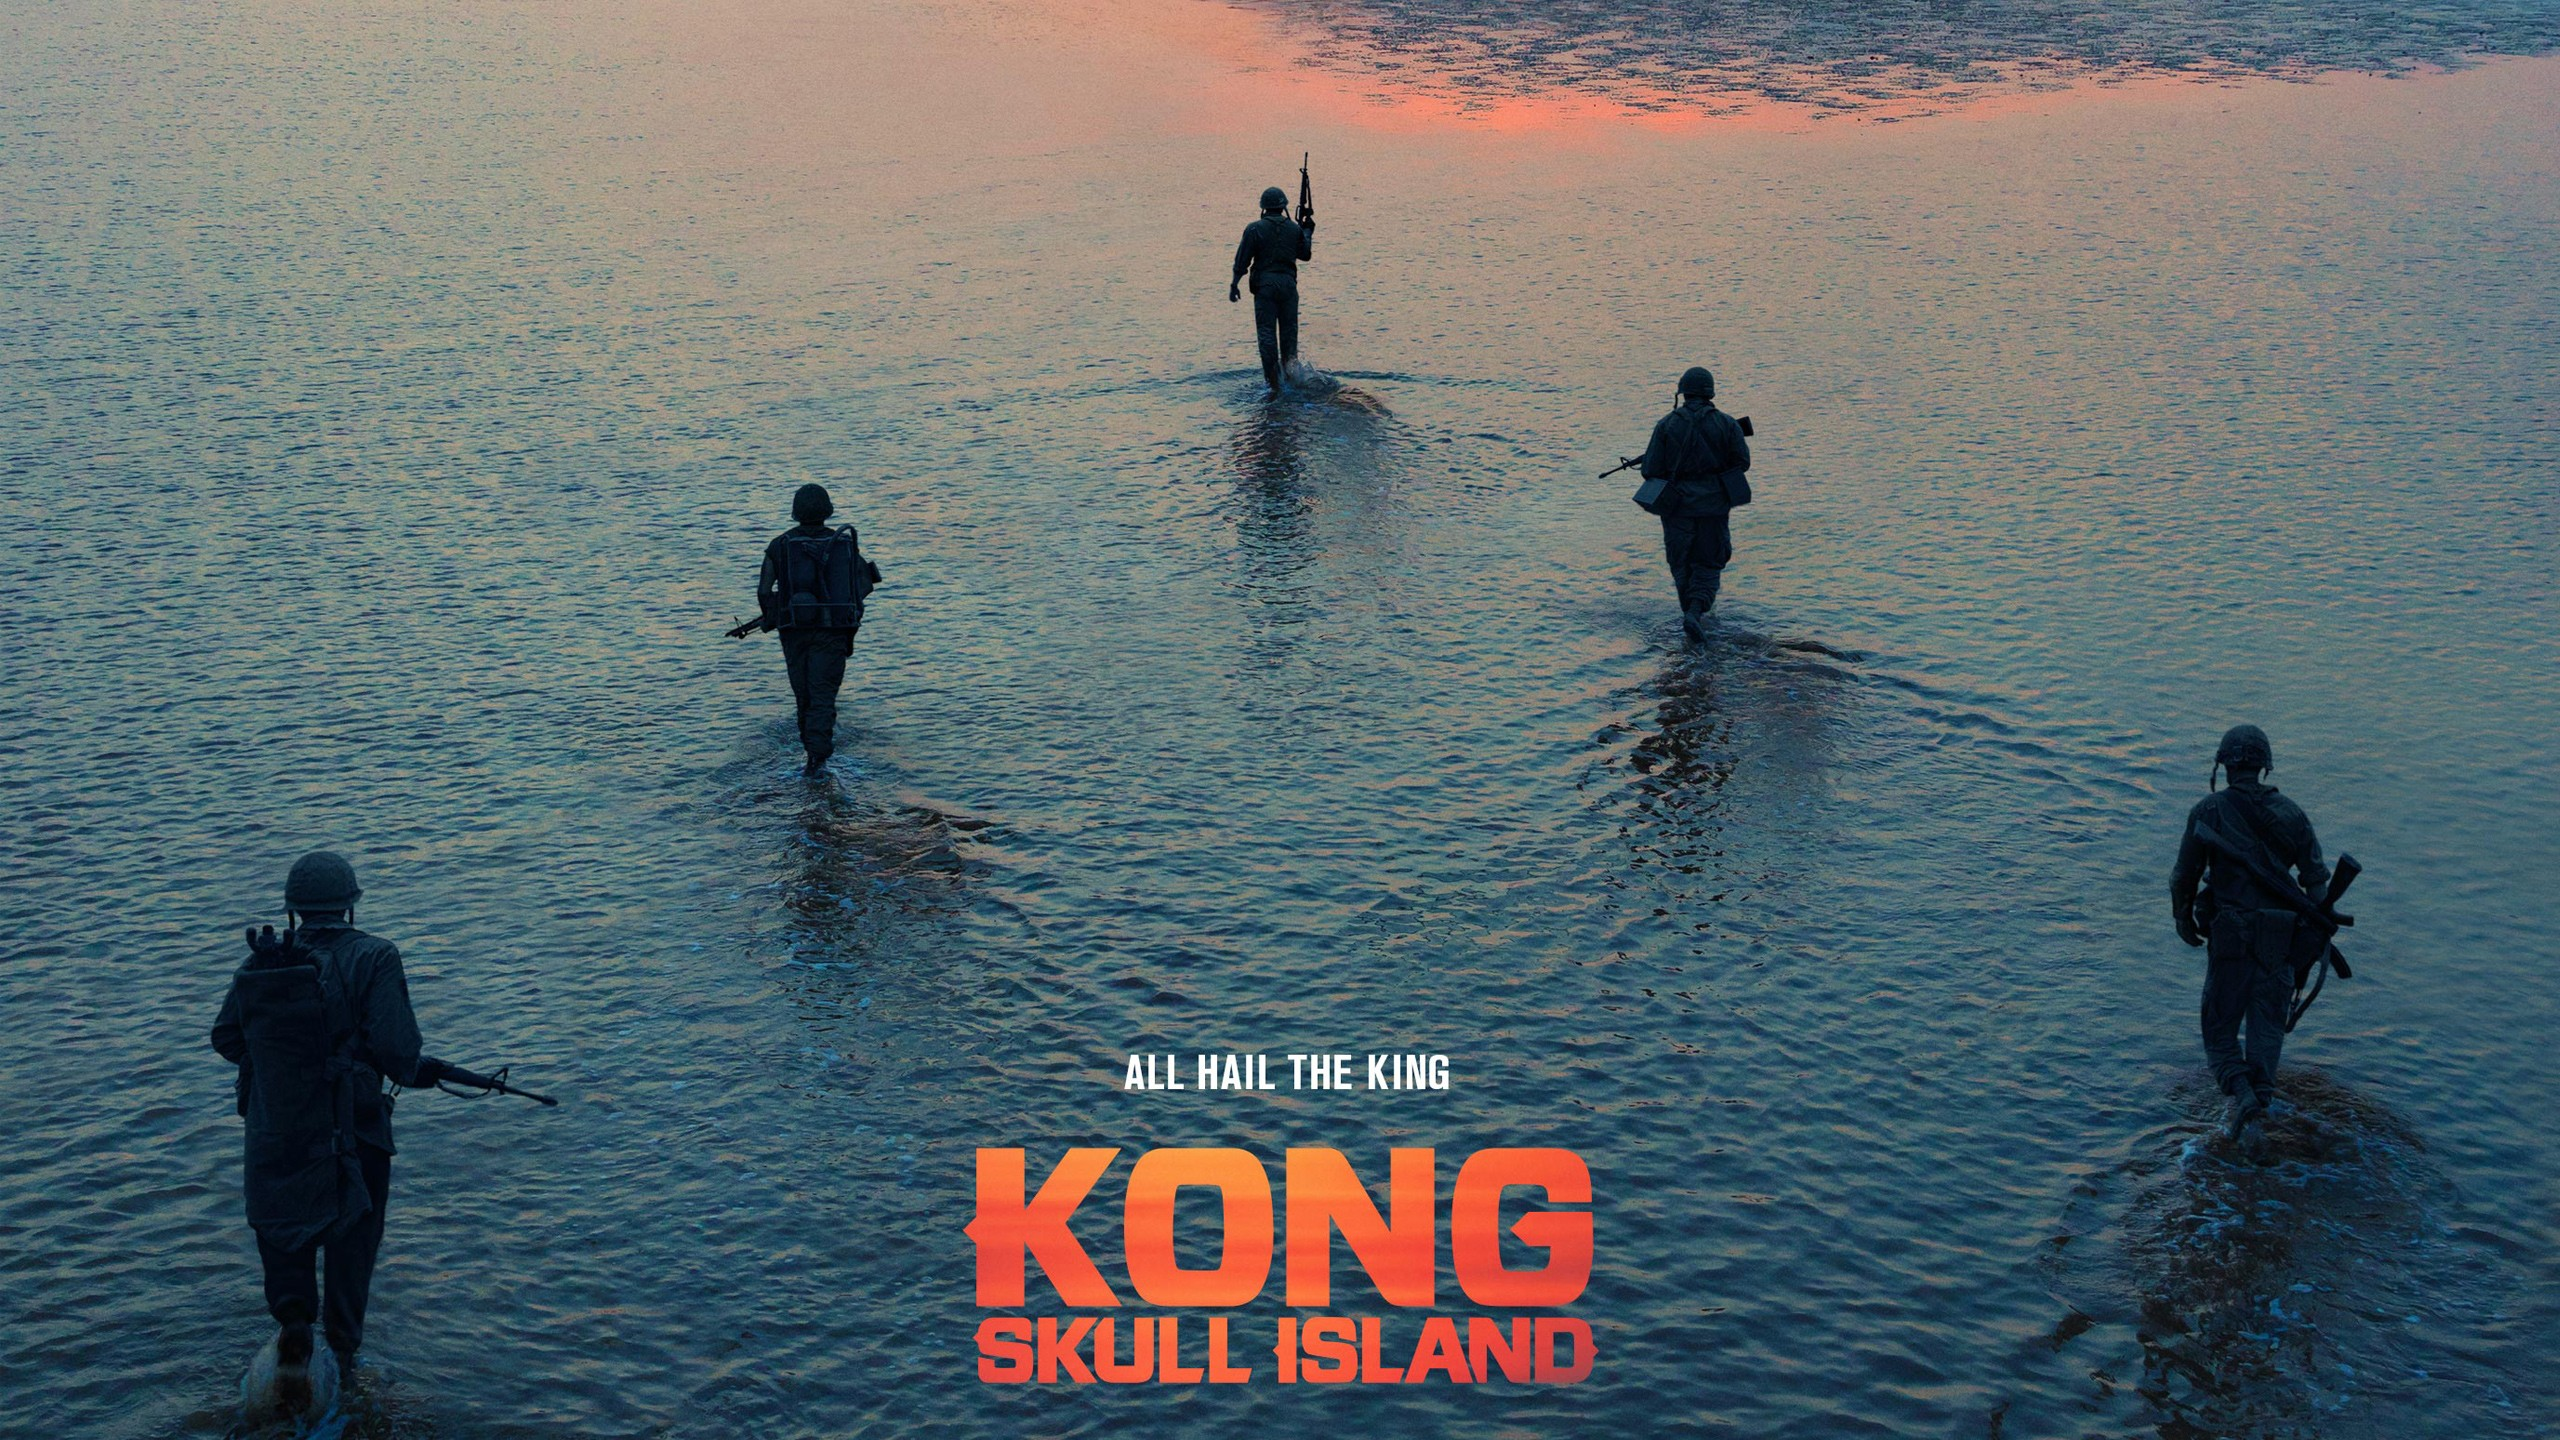 kong skull island movie wallpaper background